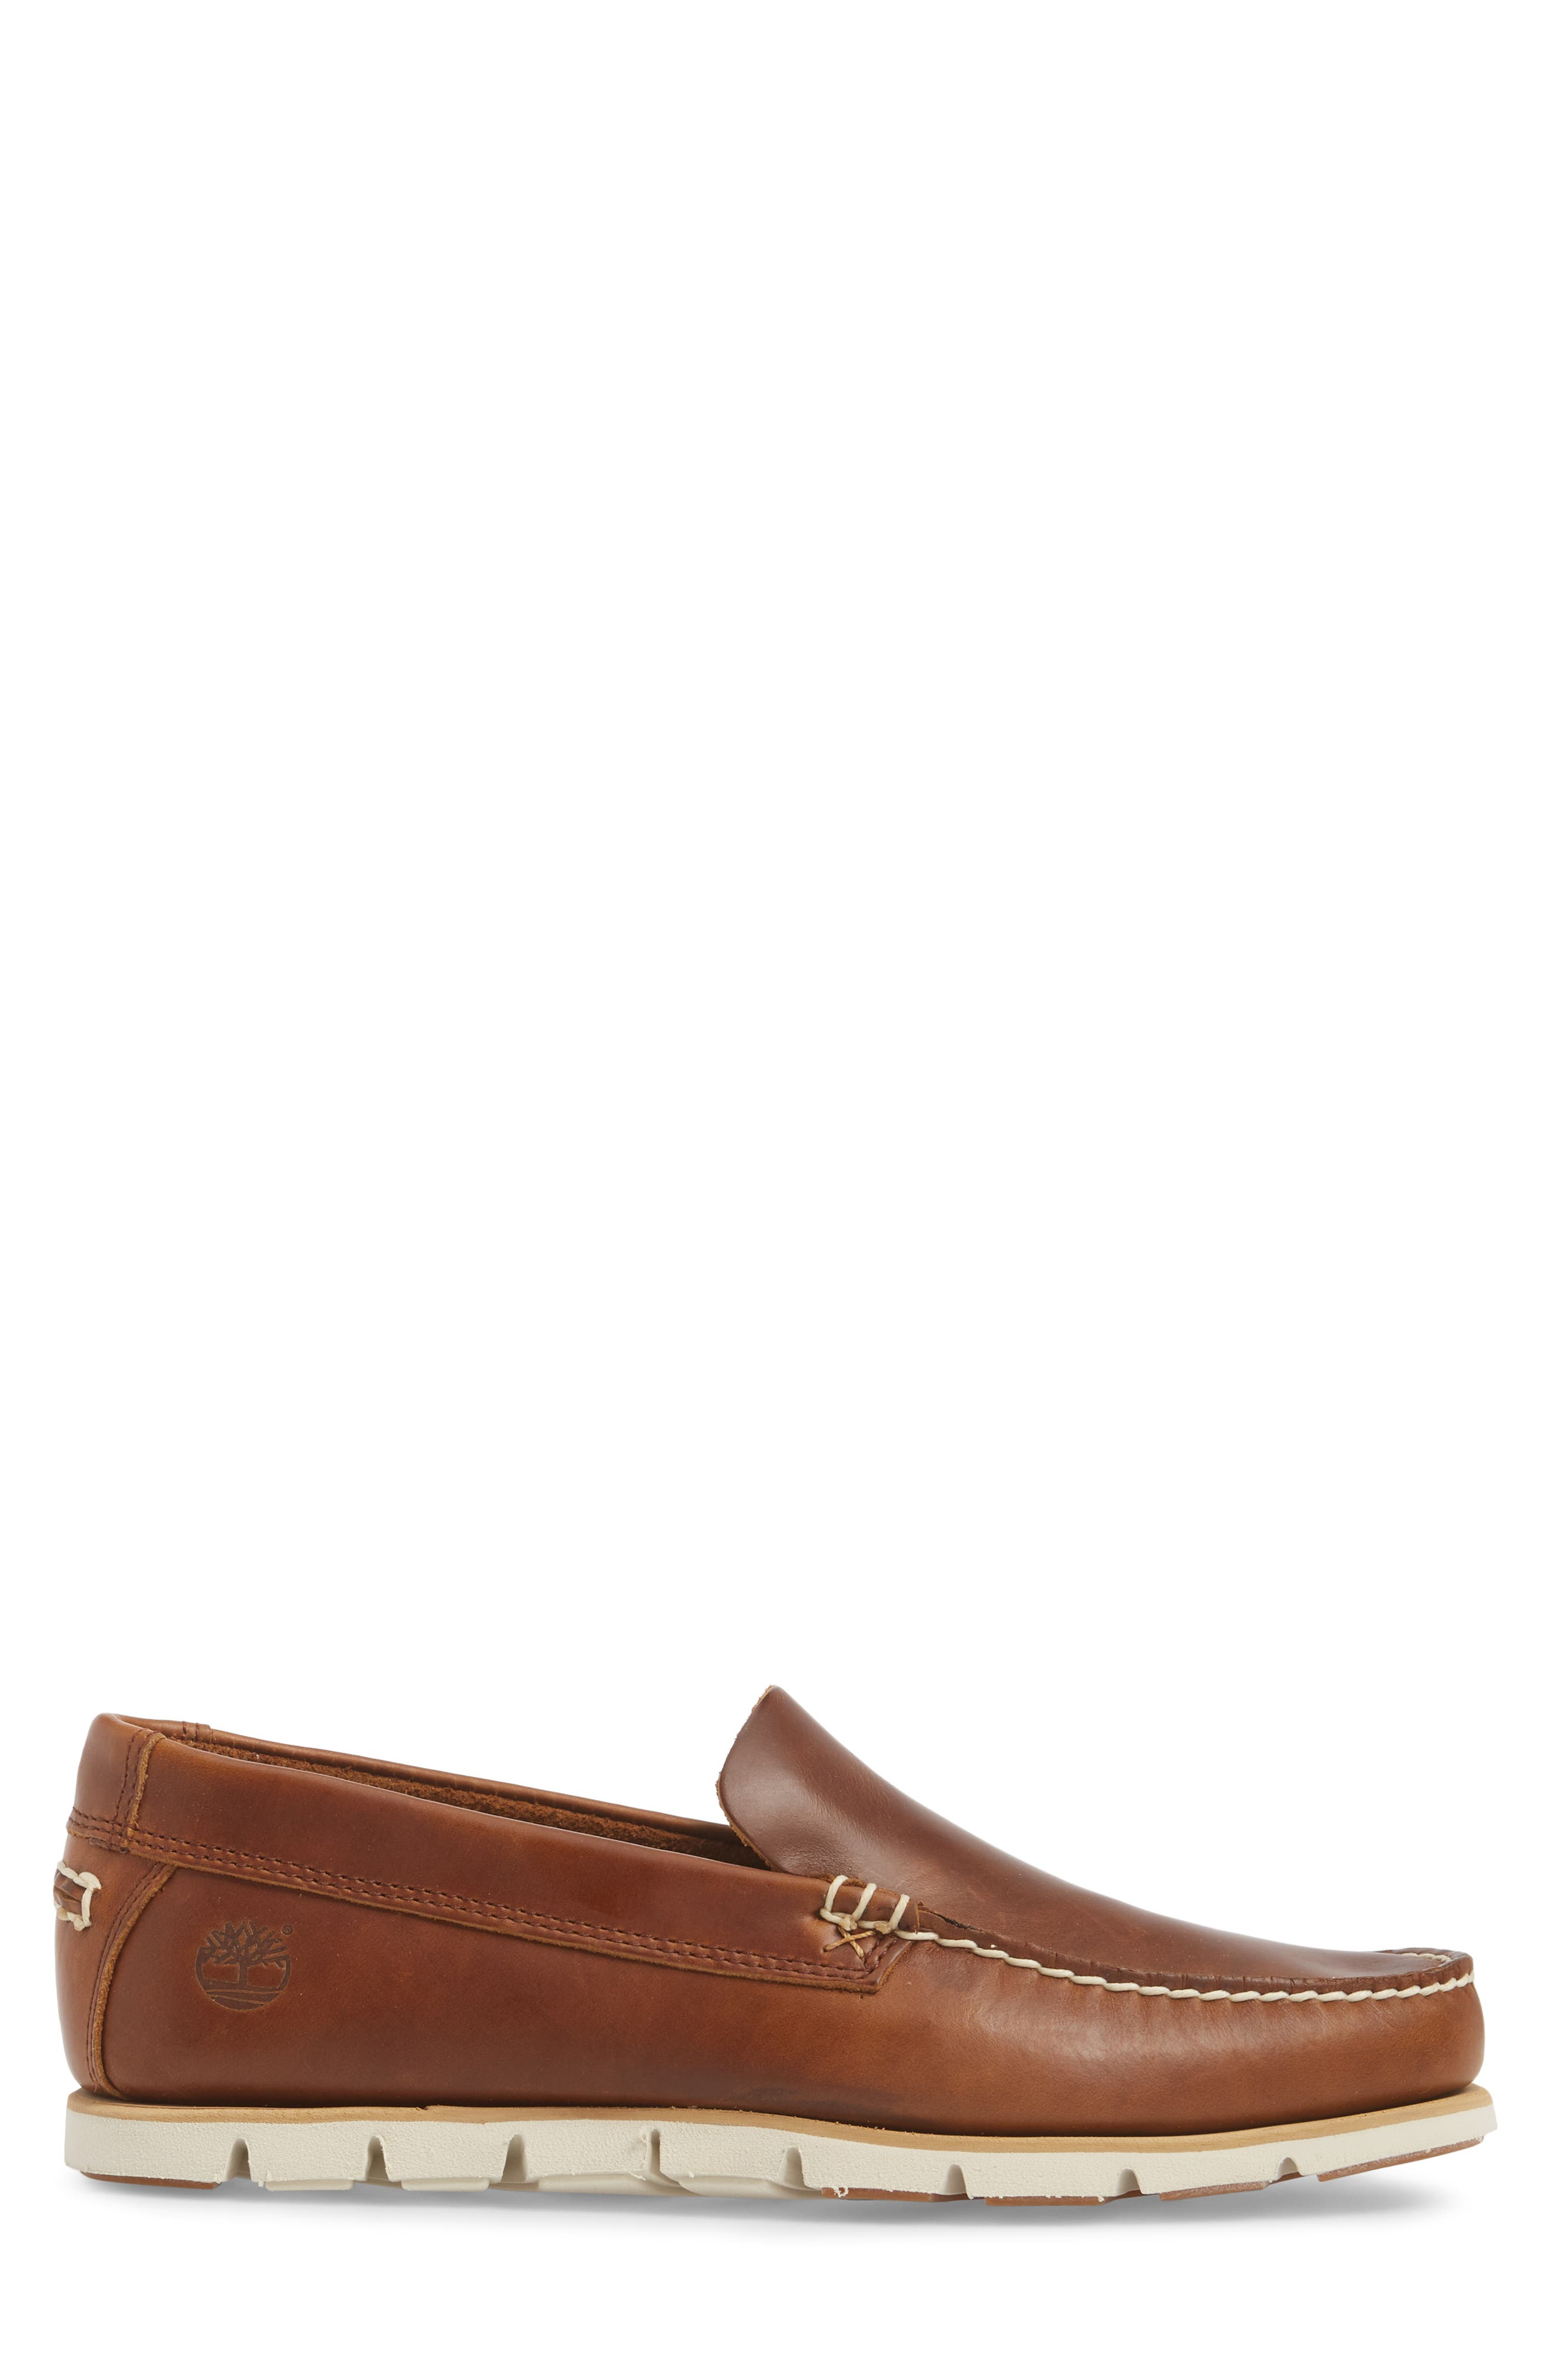 Tidelands Venetian Loafer,                             Alternate thumbnail 3, color,